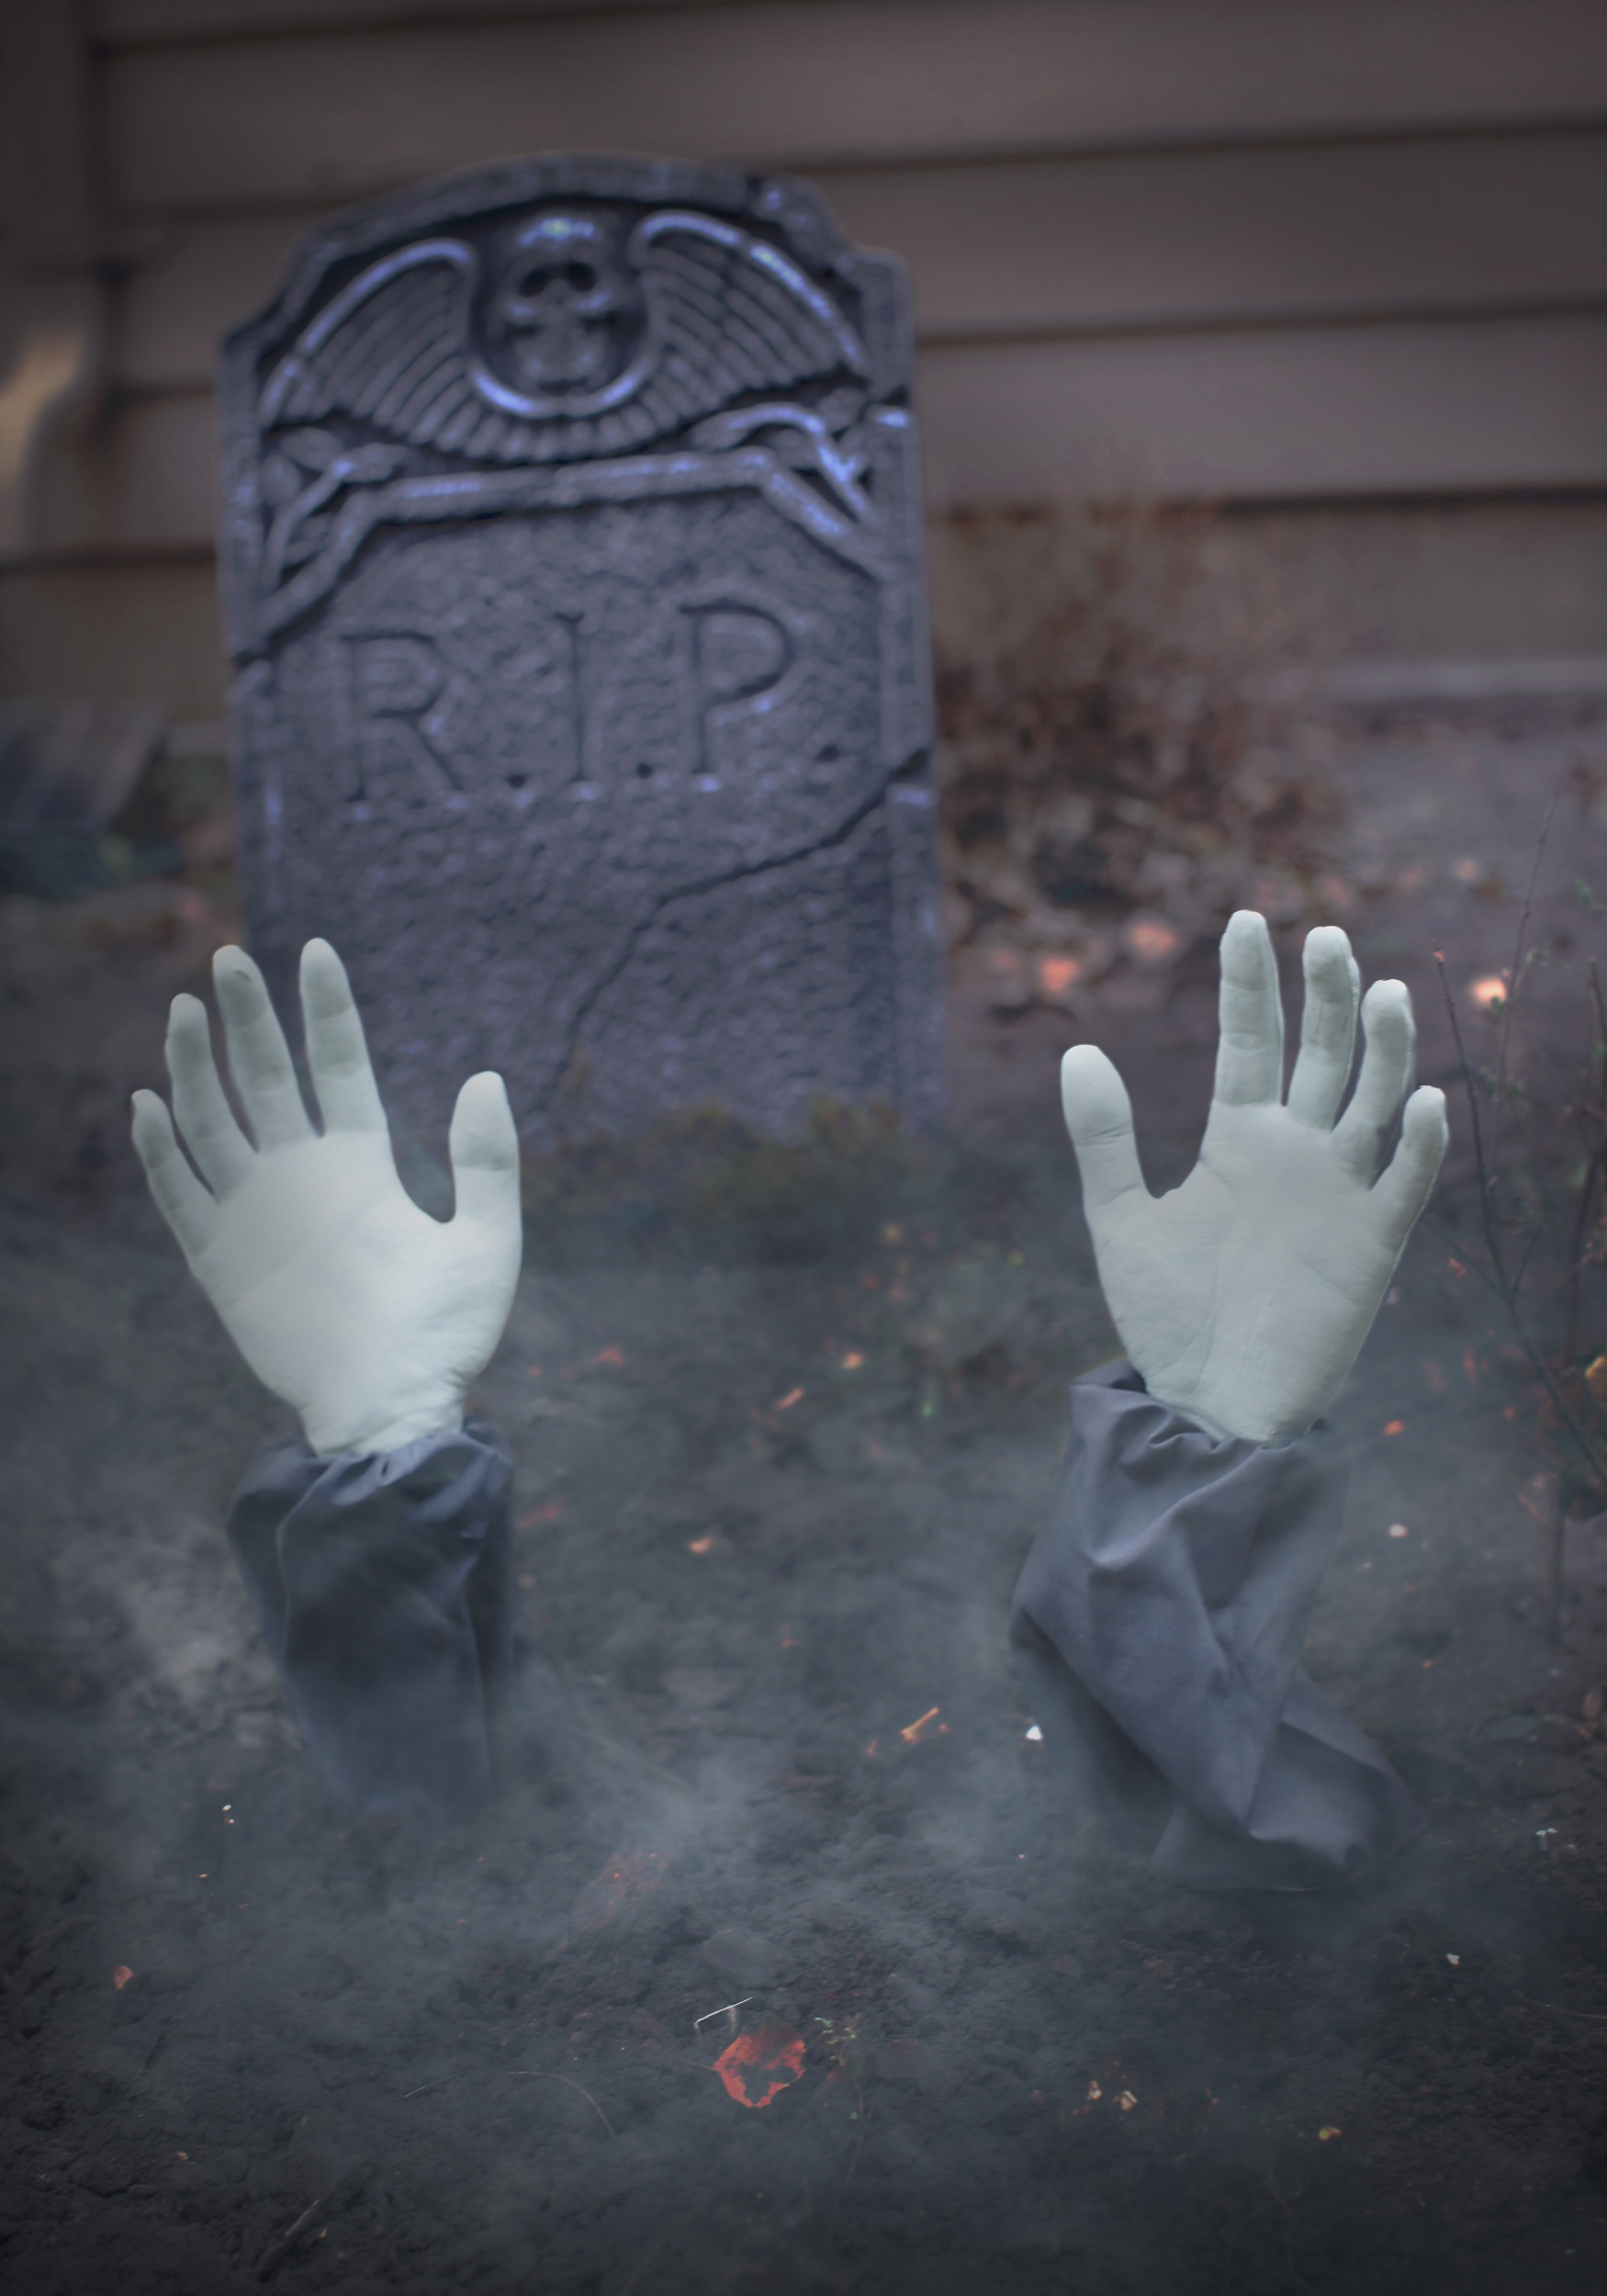 Zombie Arm Lawn Stakes Halloween Decoration